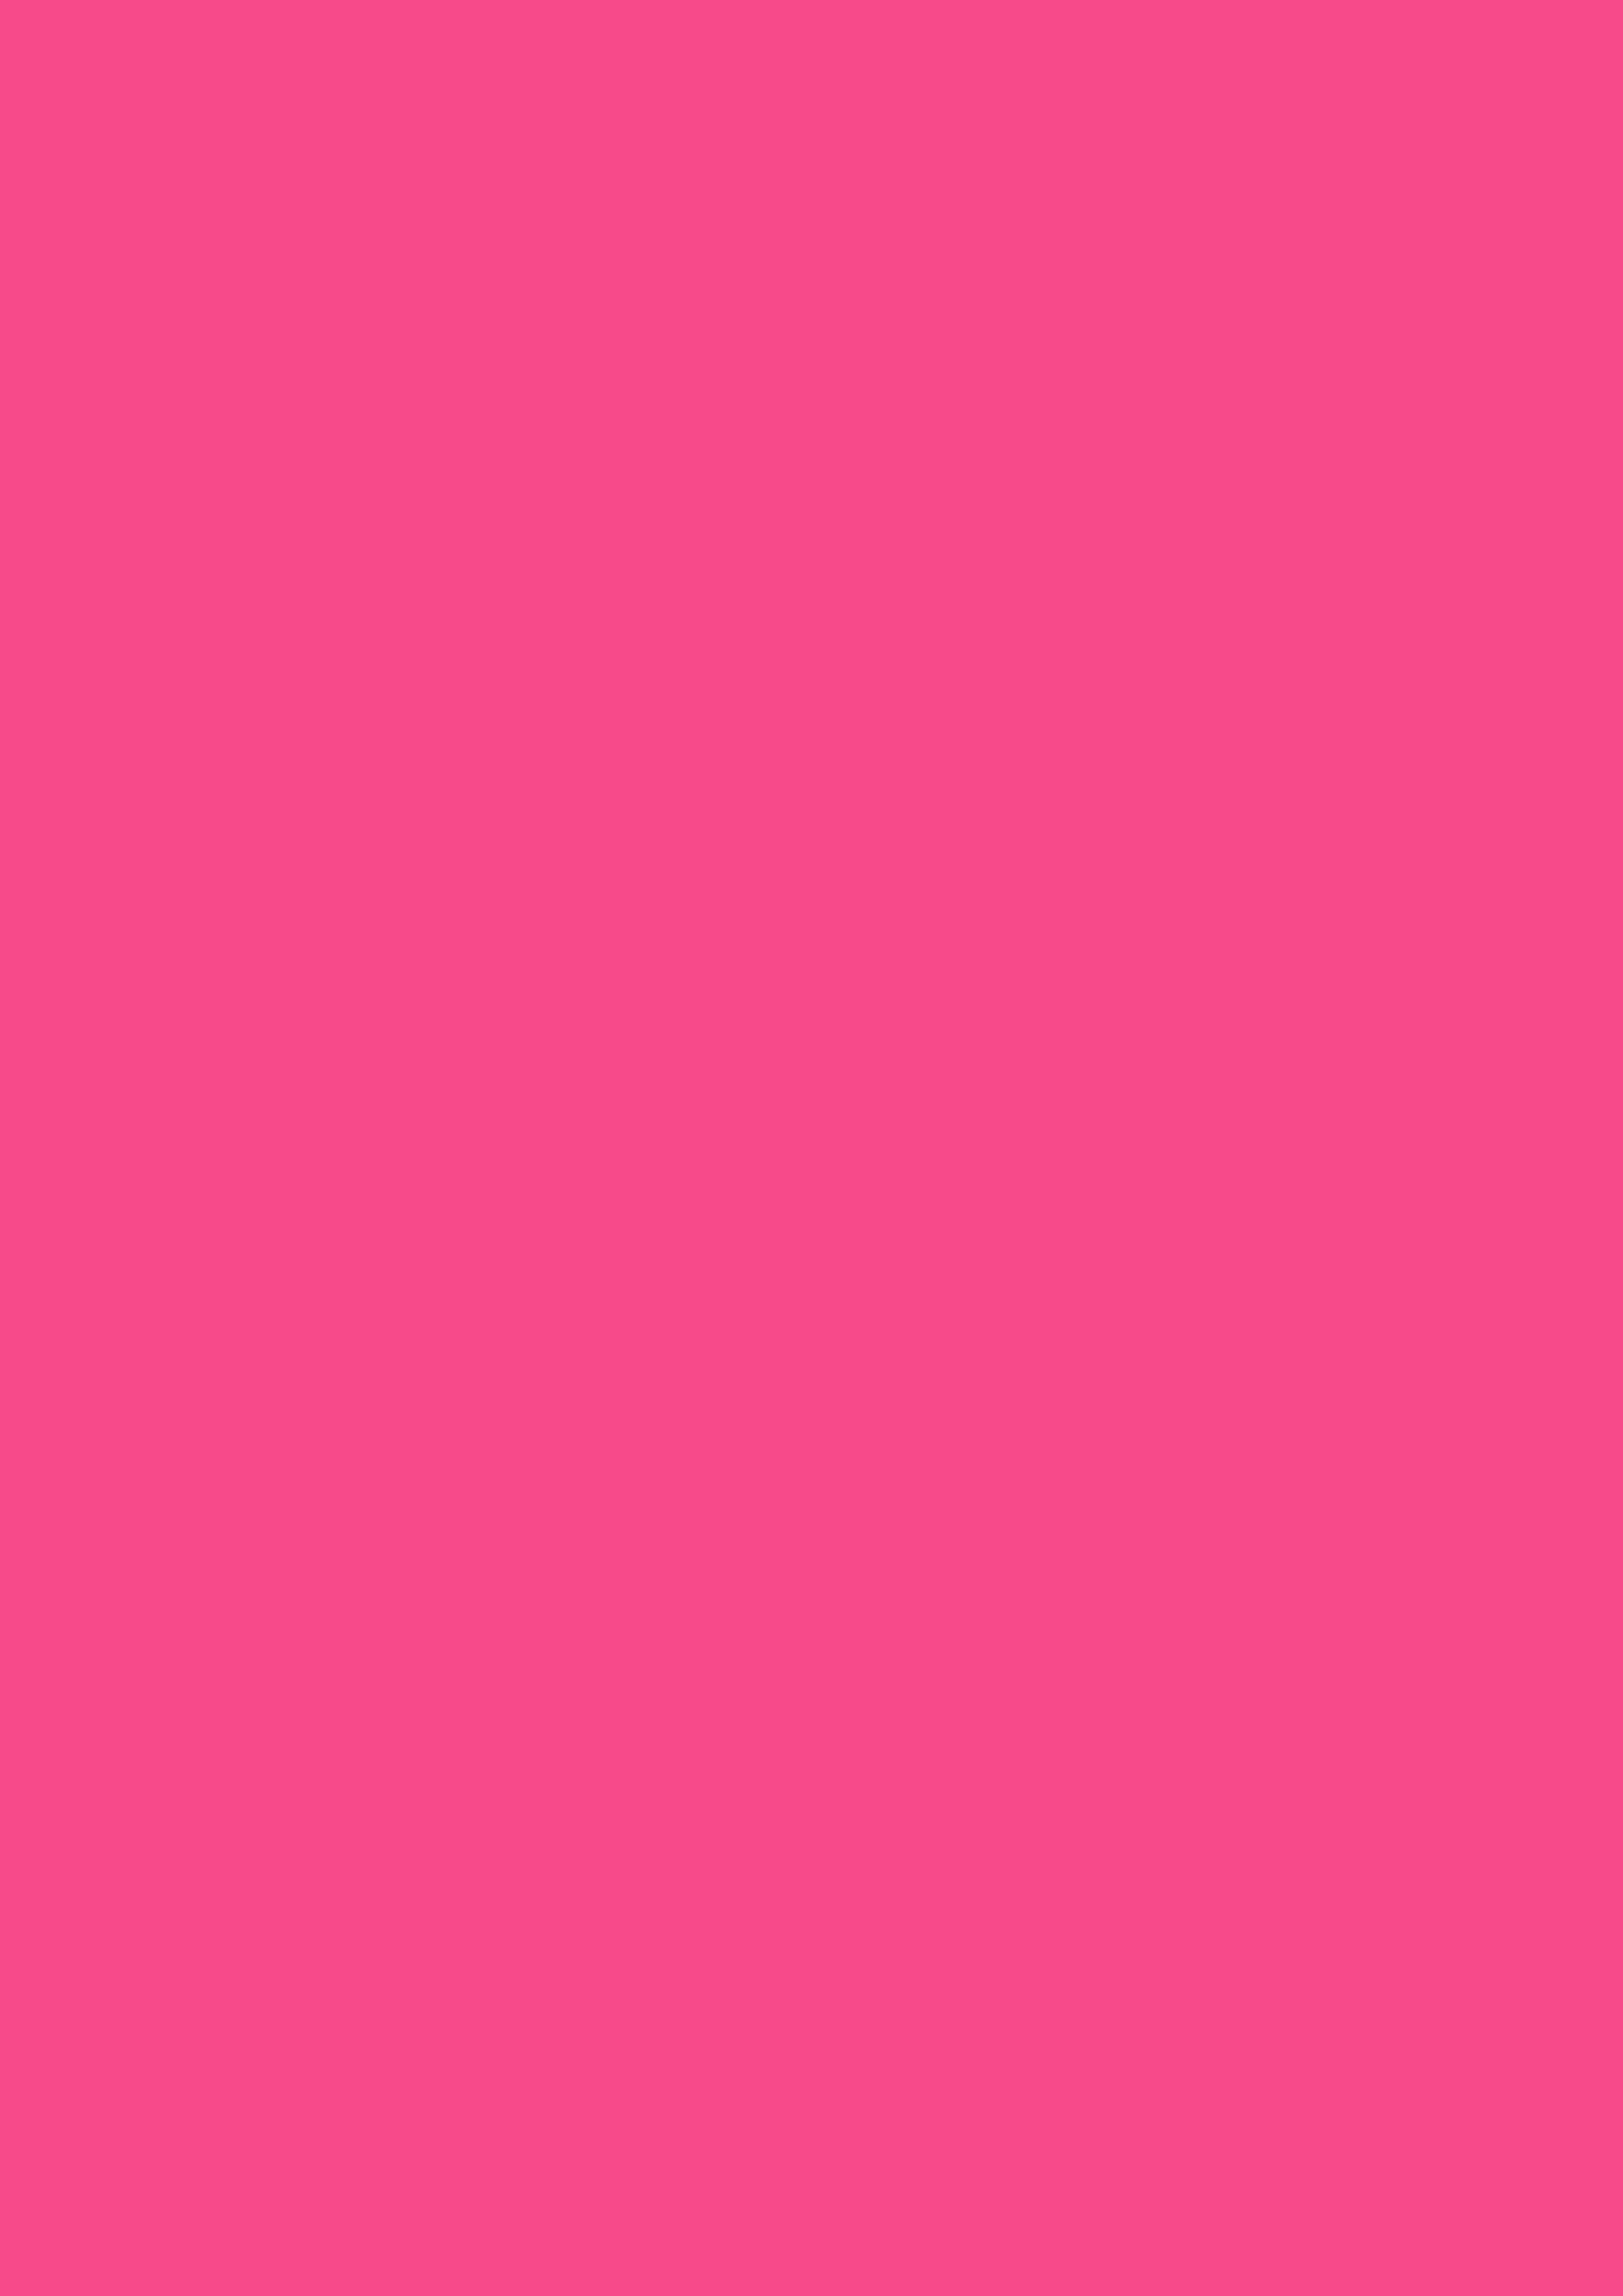 2480x3508 French Rose Solid Color Background